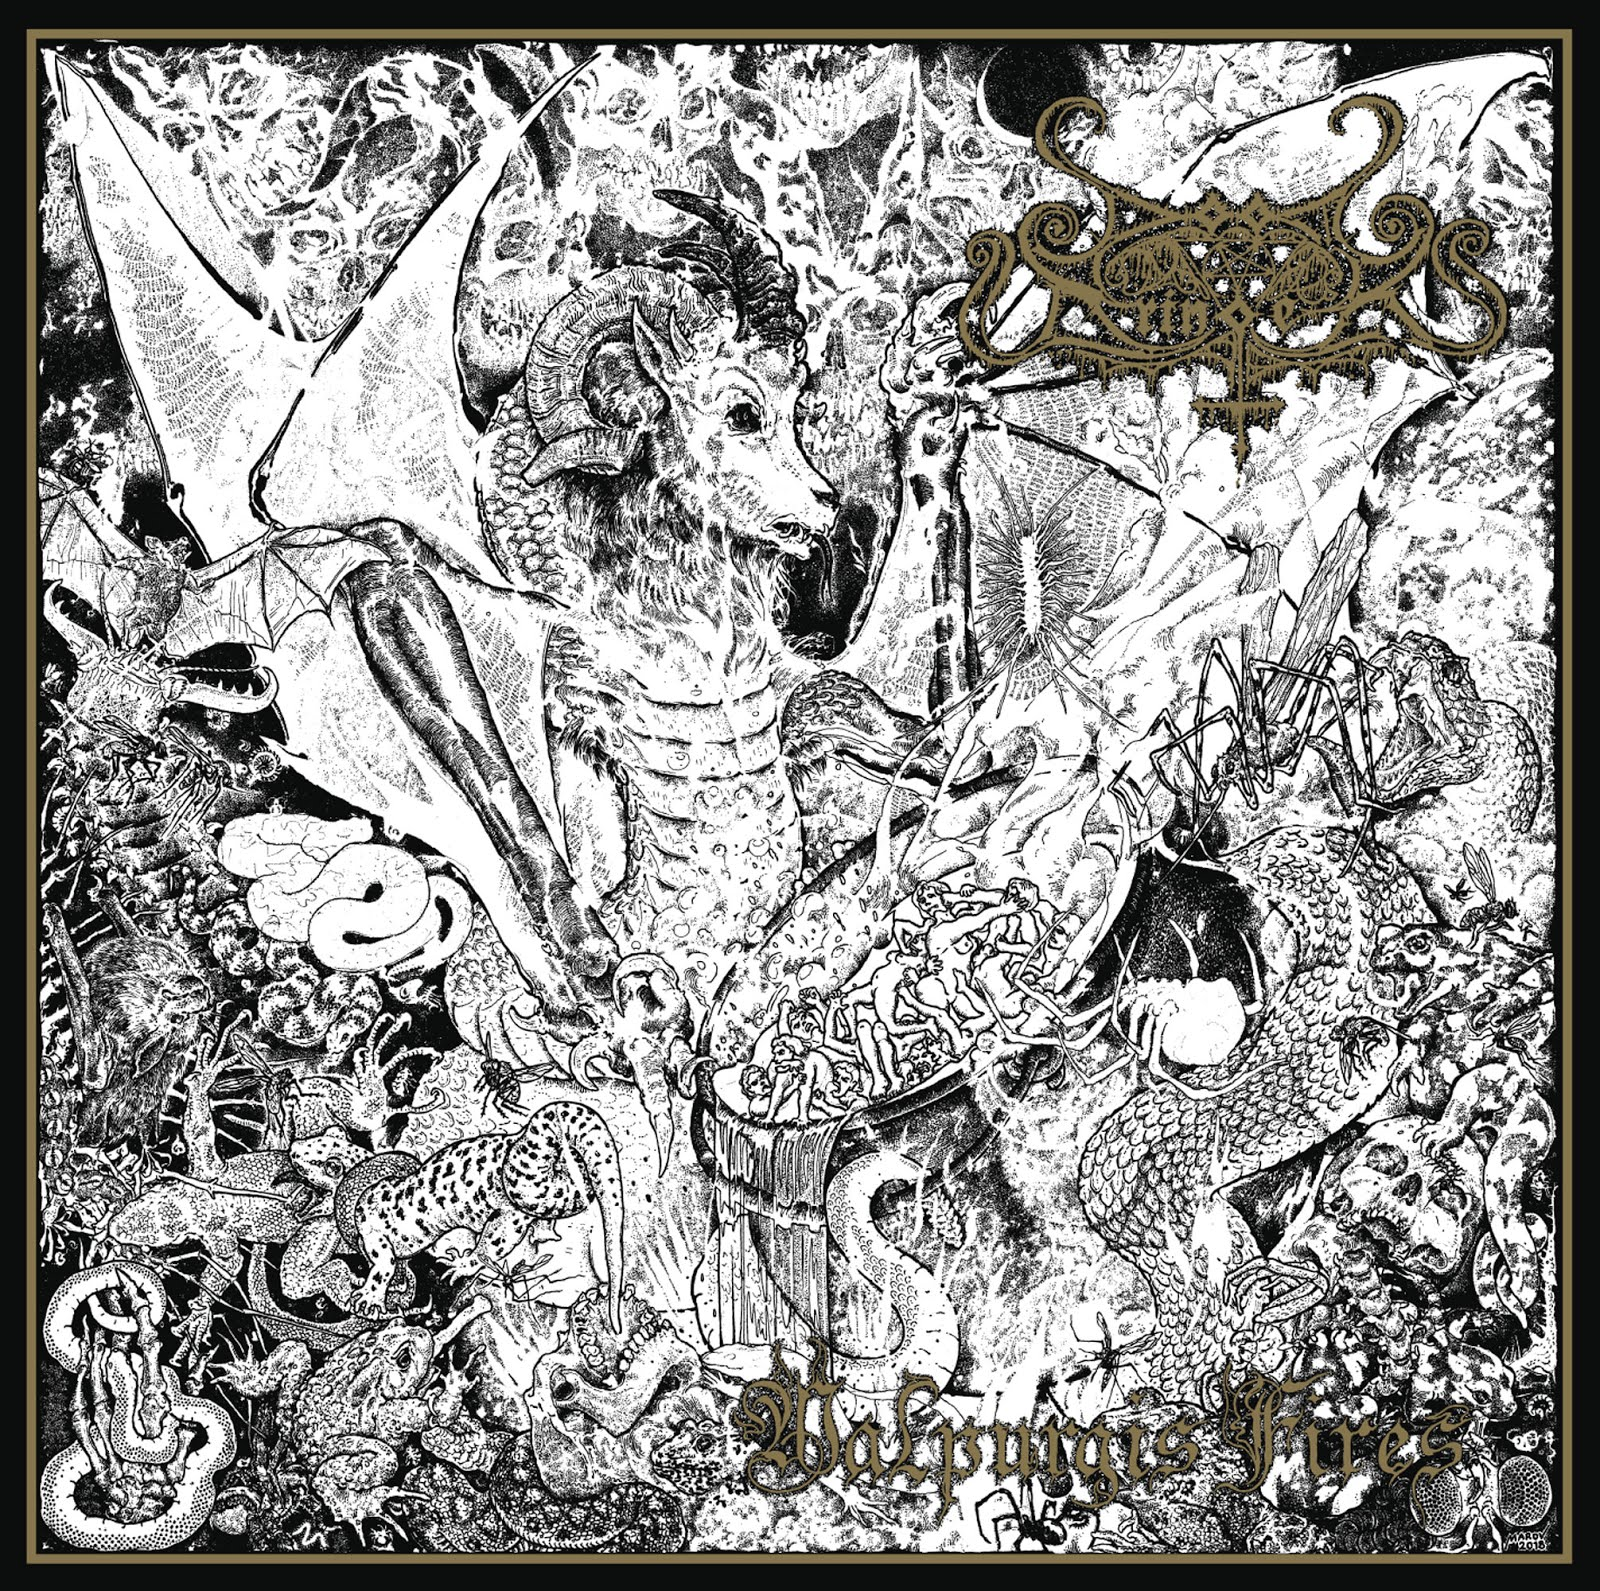 Doombringer (Poland) - Walpurgis Fires Press Release + Track Stream.